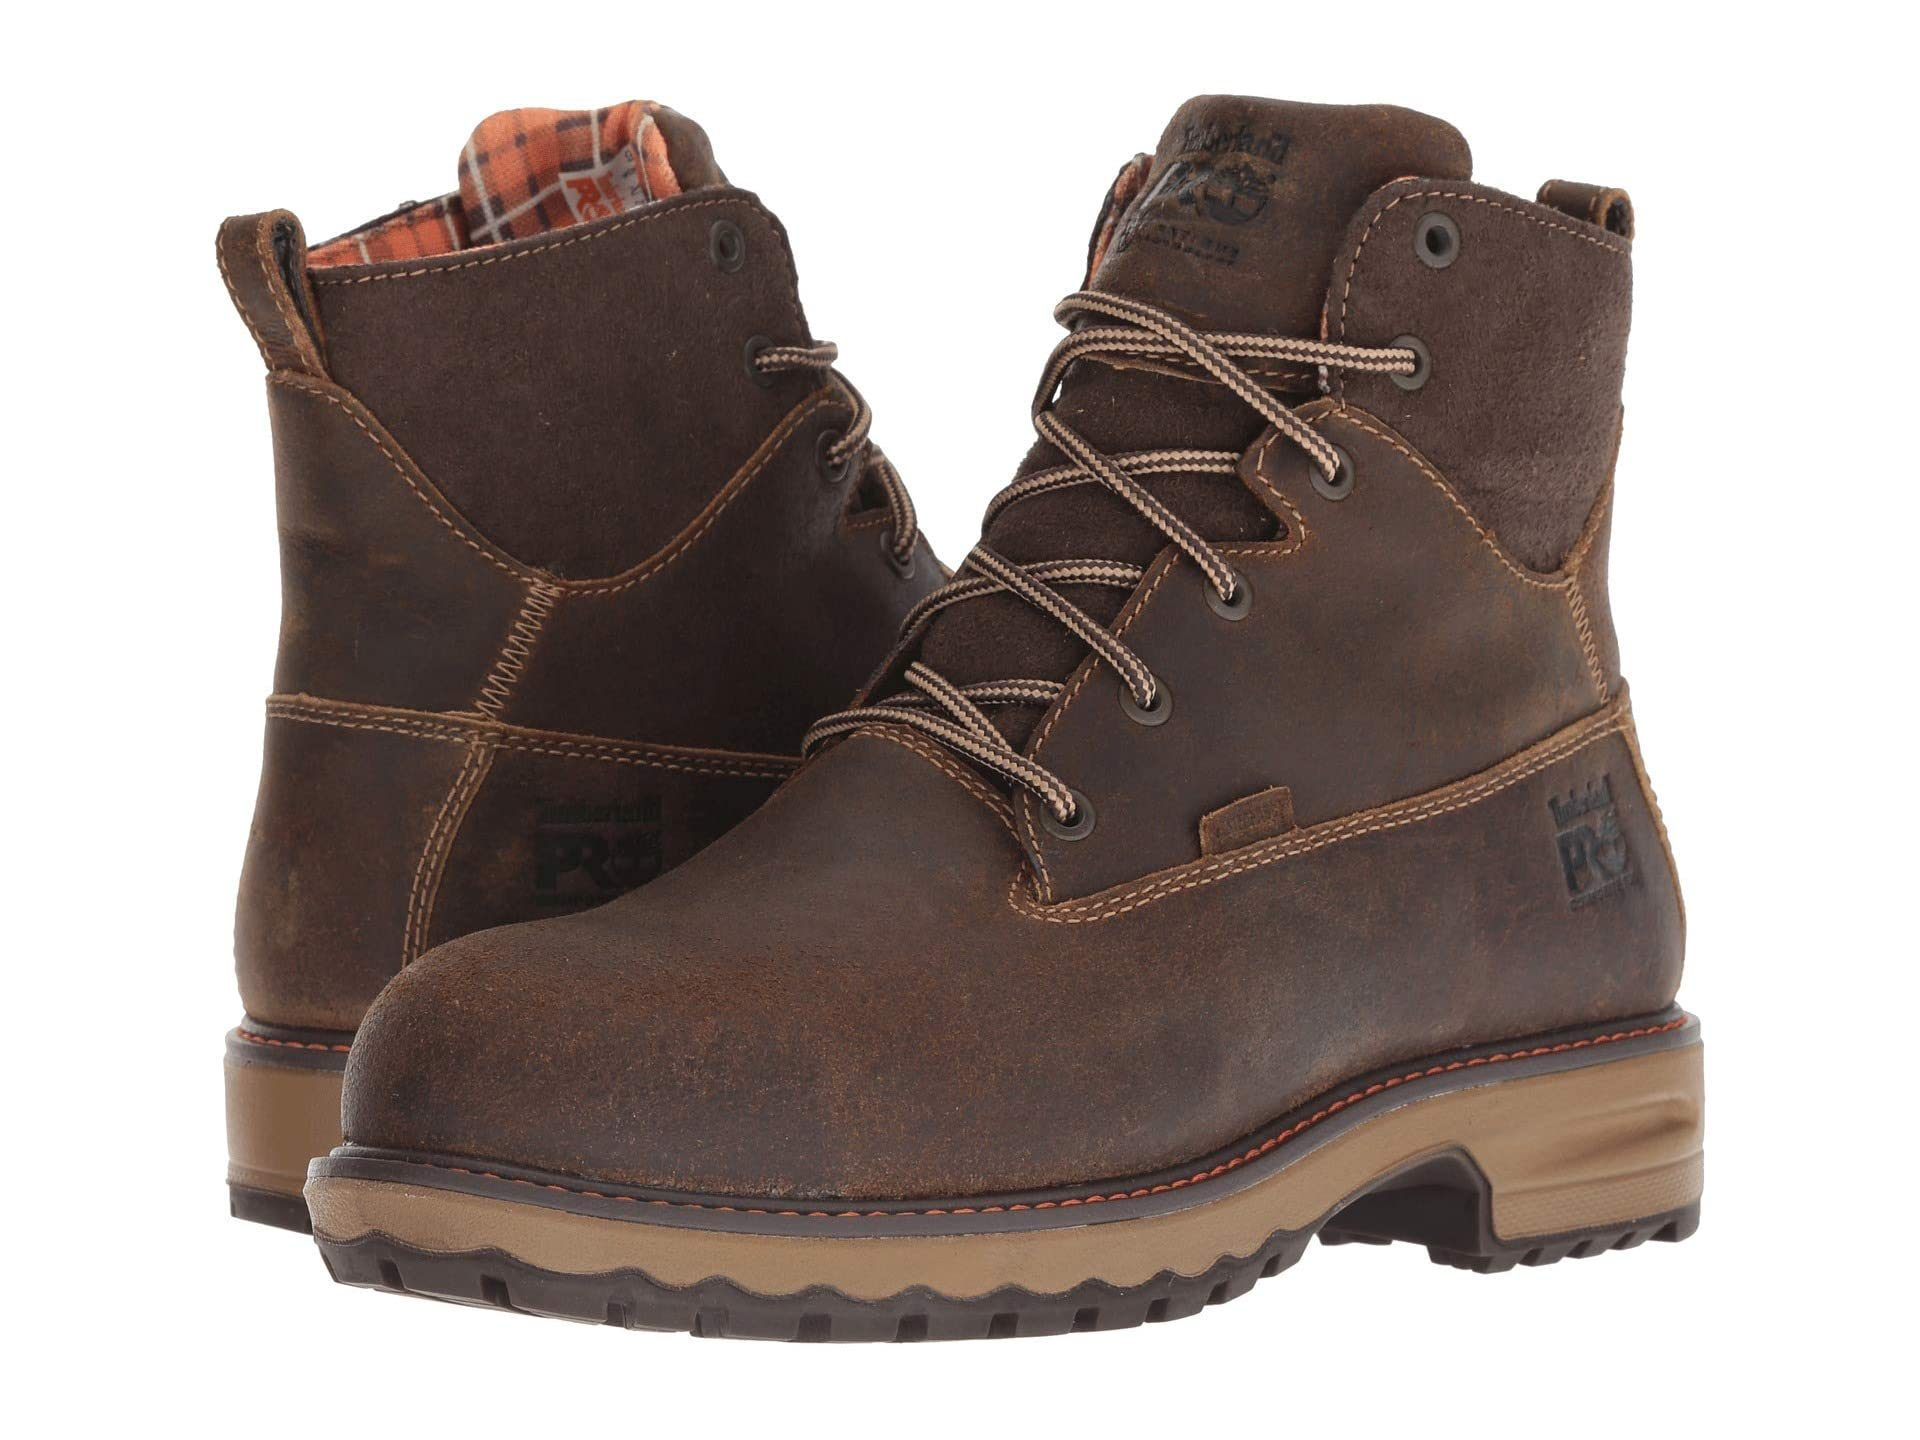 "Timberland PRO Hightower 6"" Safety Toe WP 400 Insulated work boots"